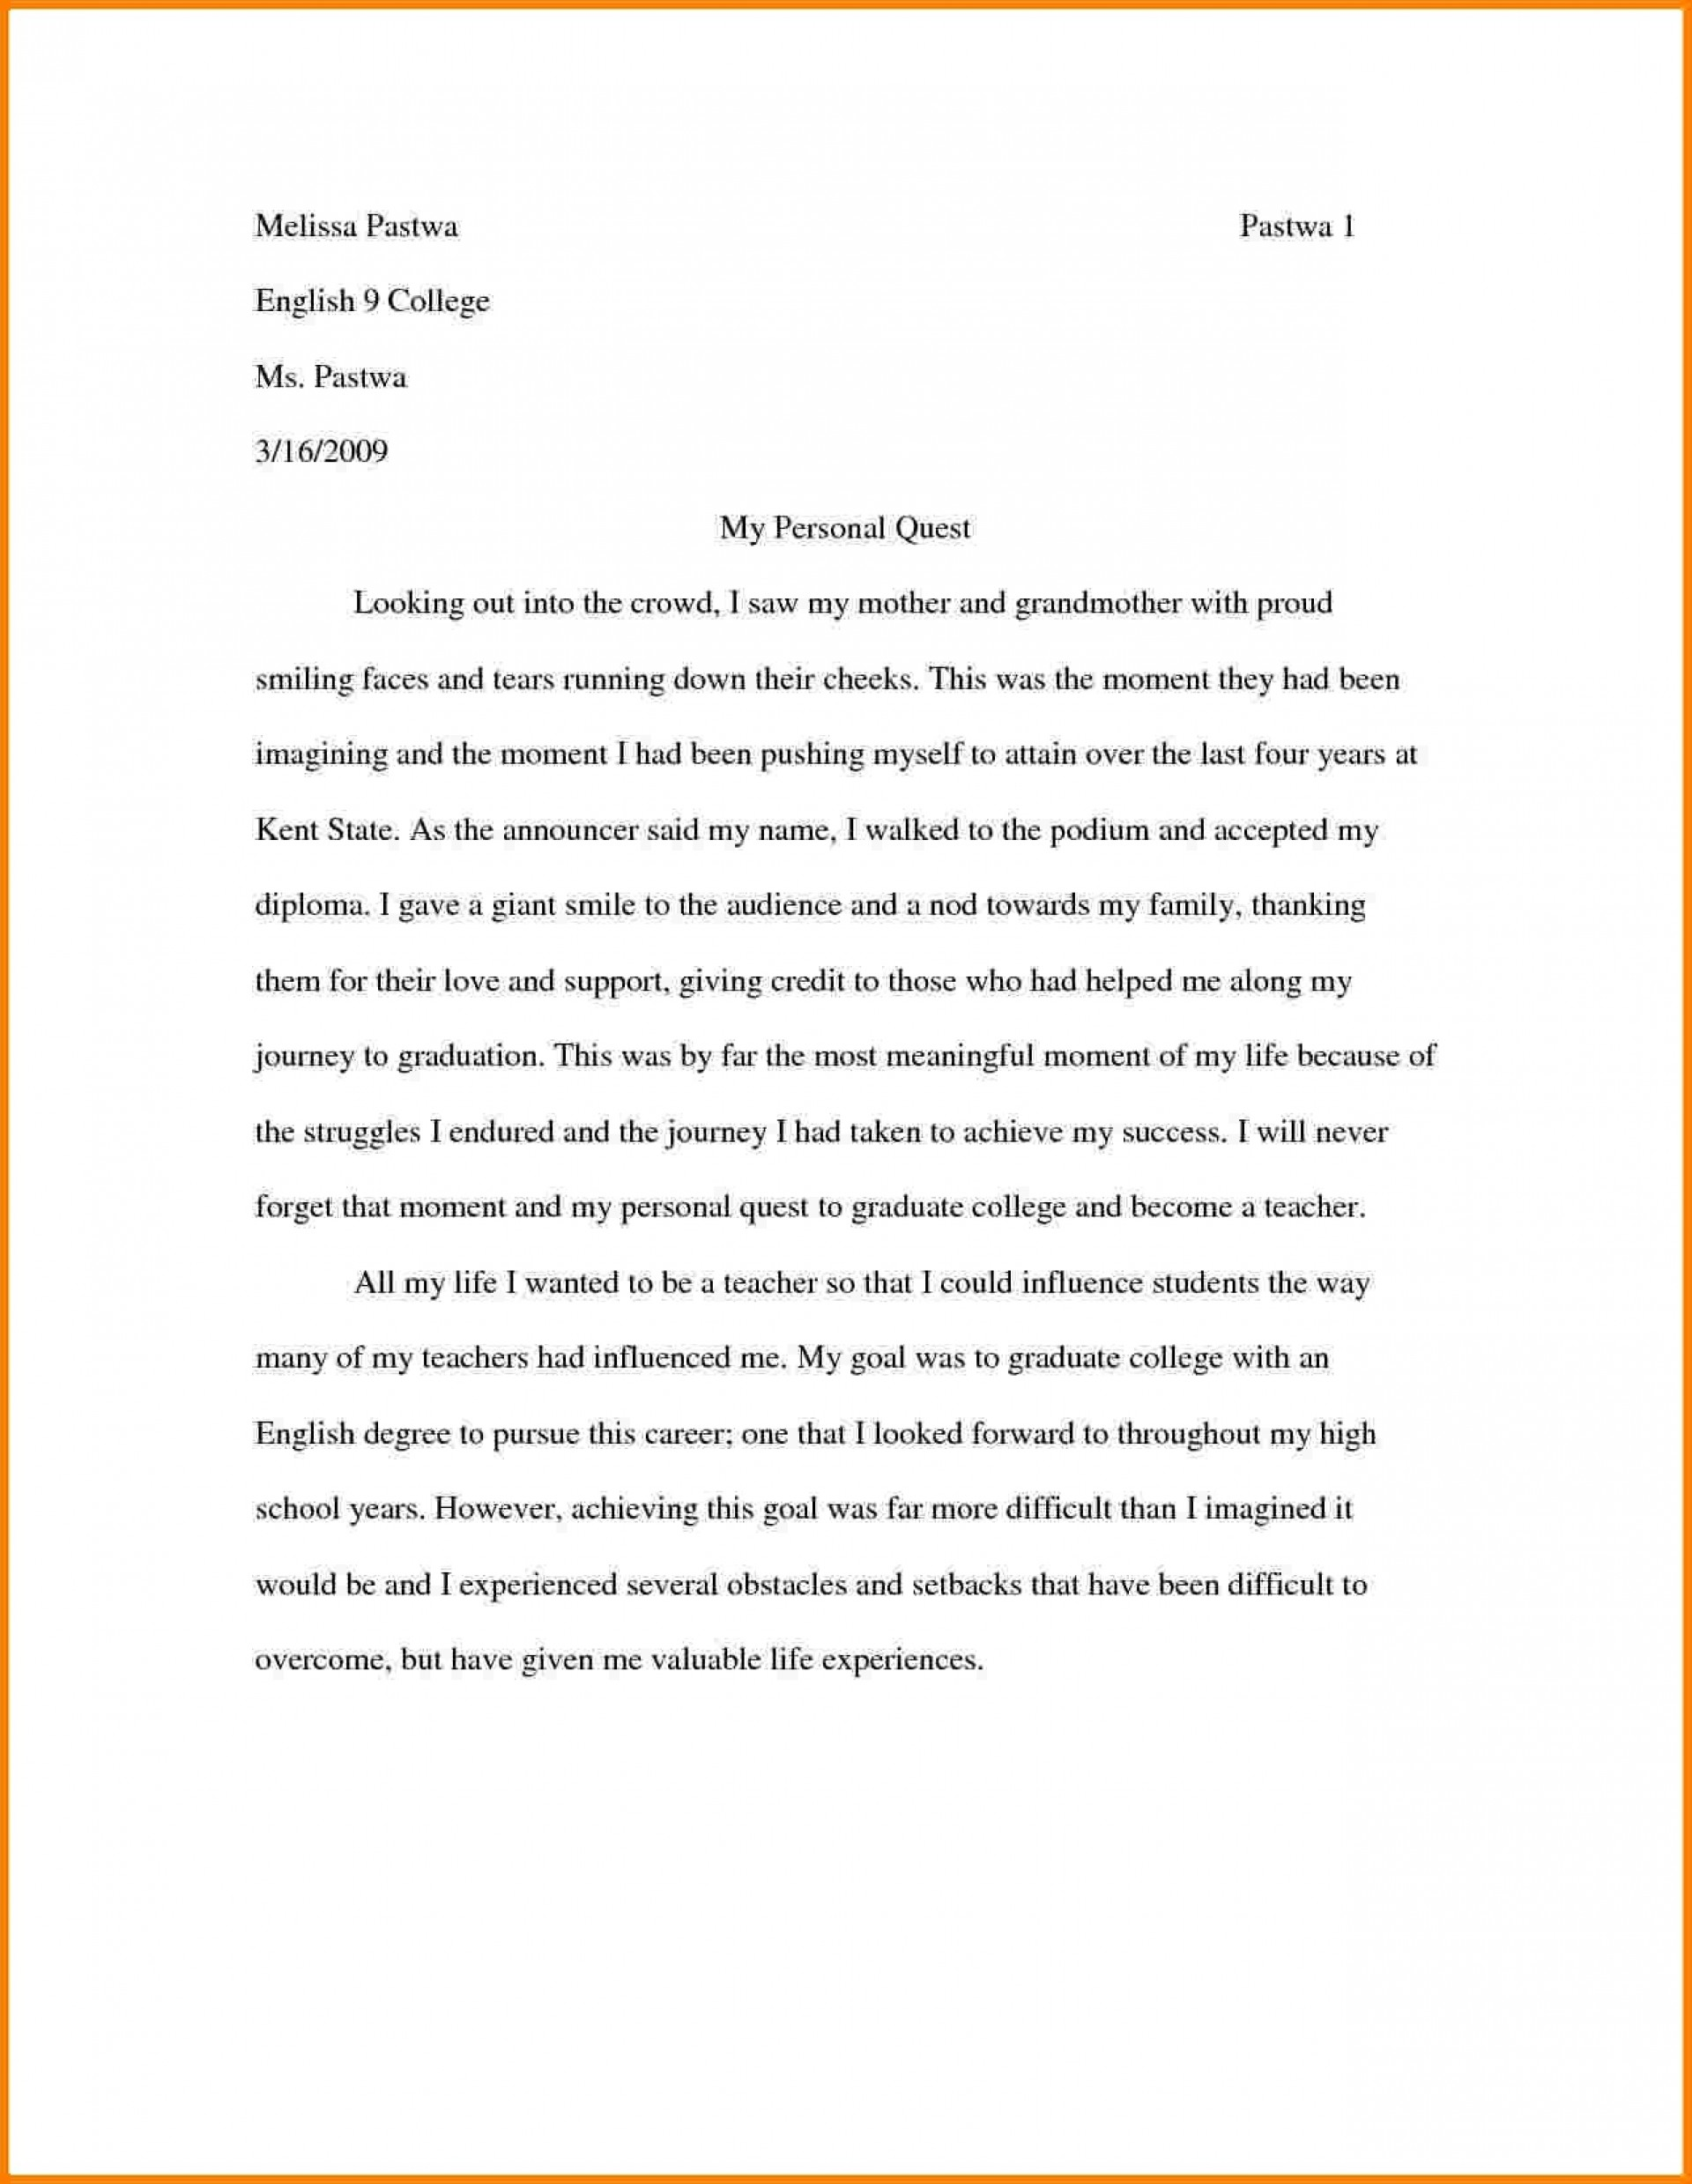 essay example how to write memoir informative  thatsnotus   how to write memoir essay example narrative with dialogue examples  selo yogawithjo co impressive a